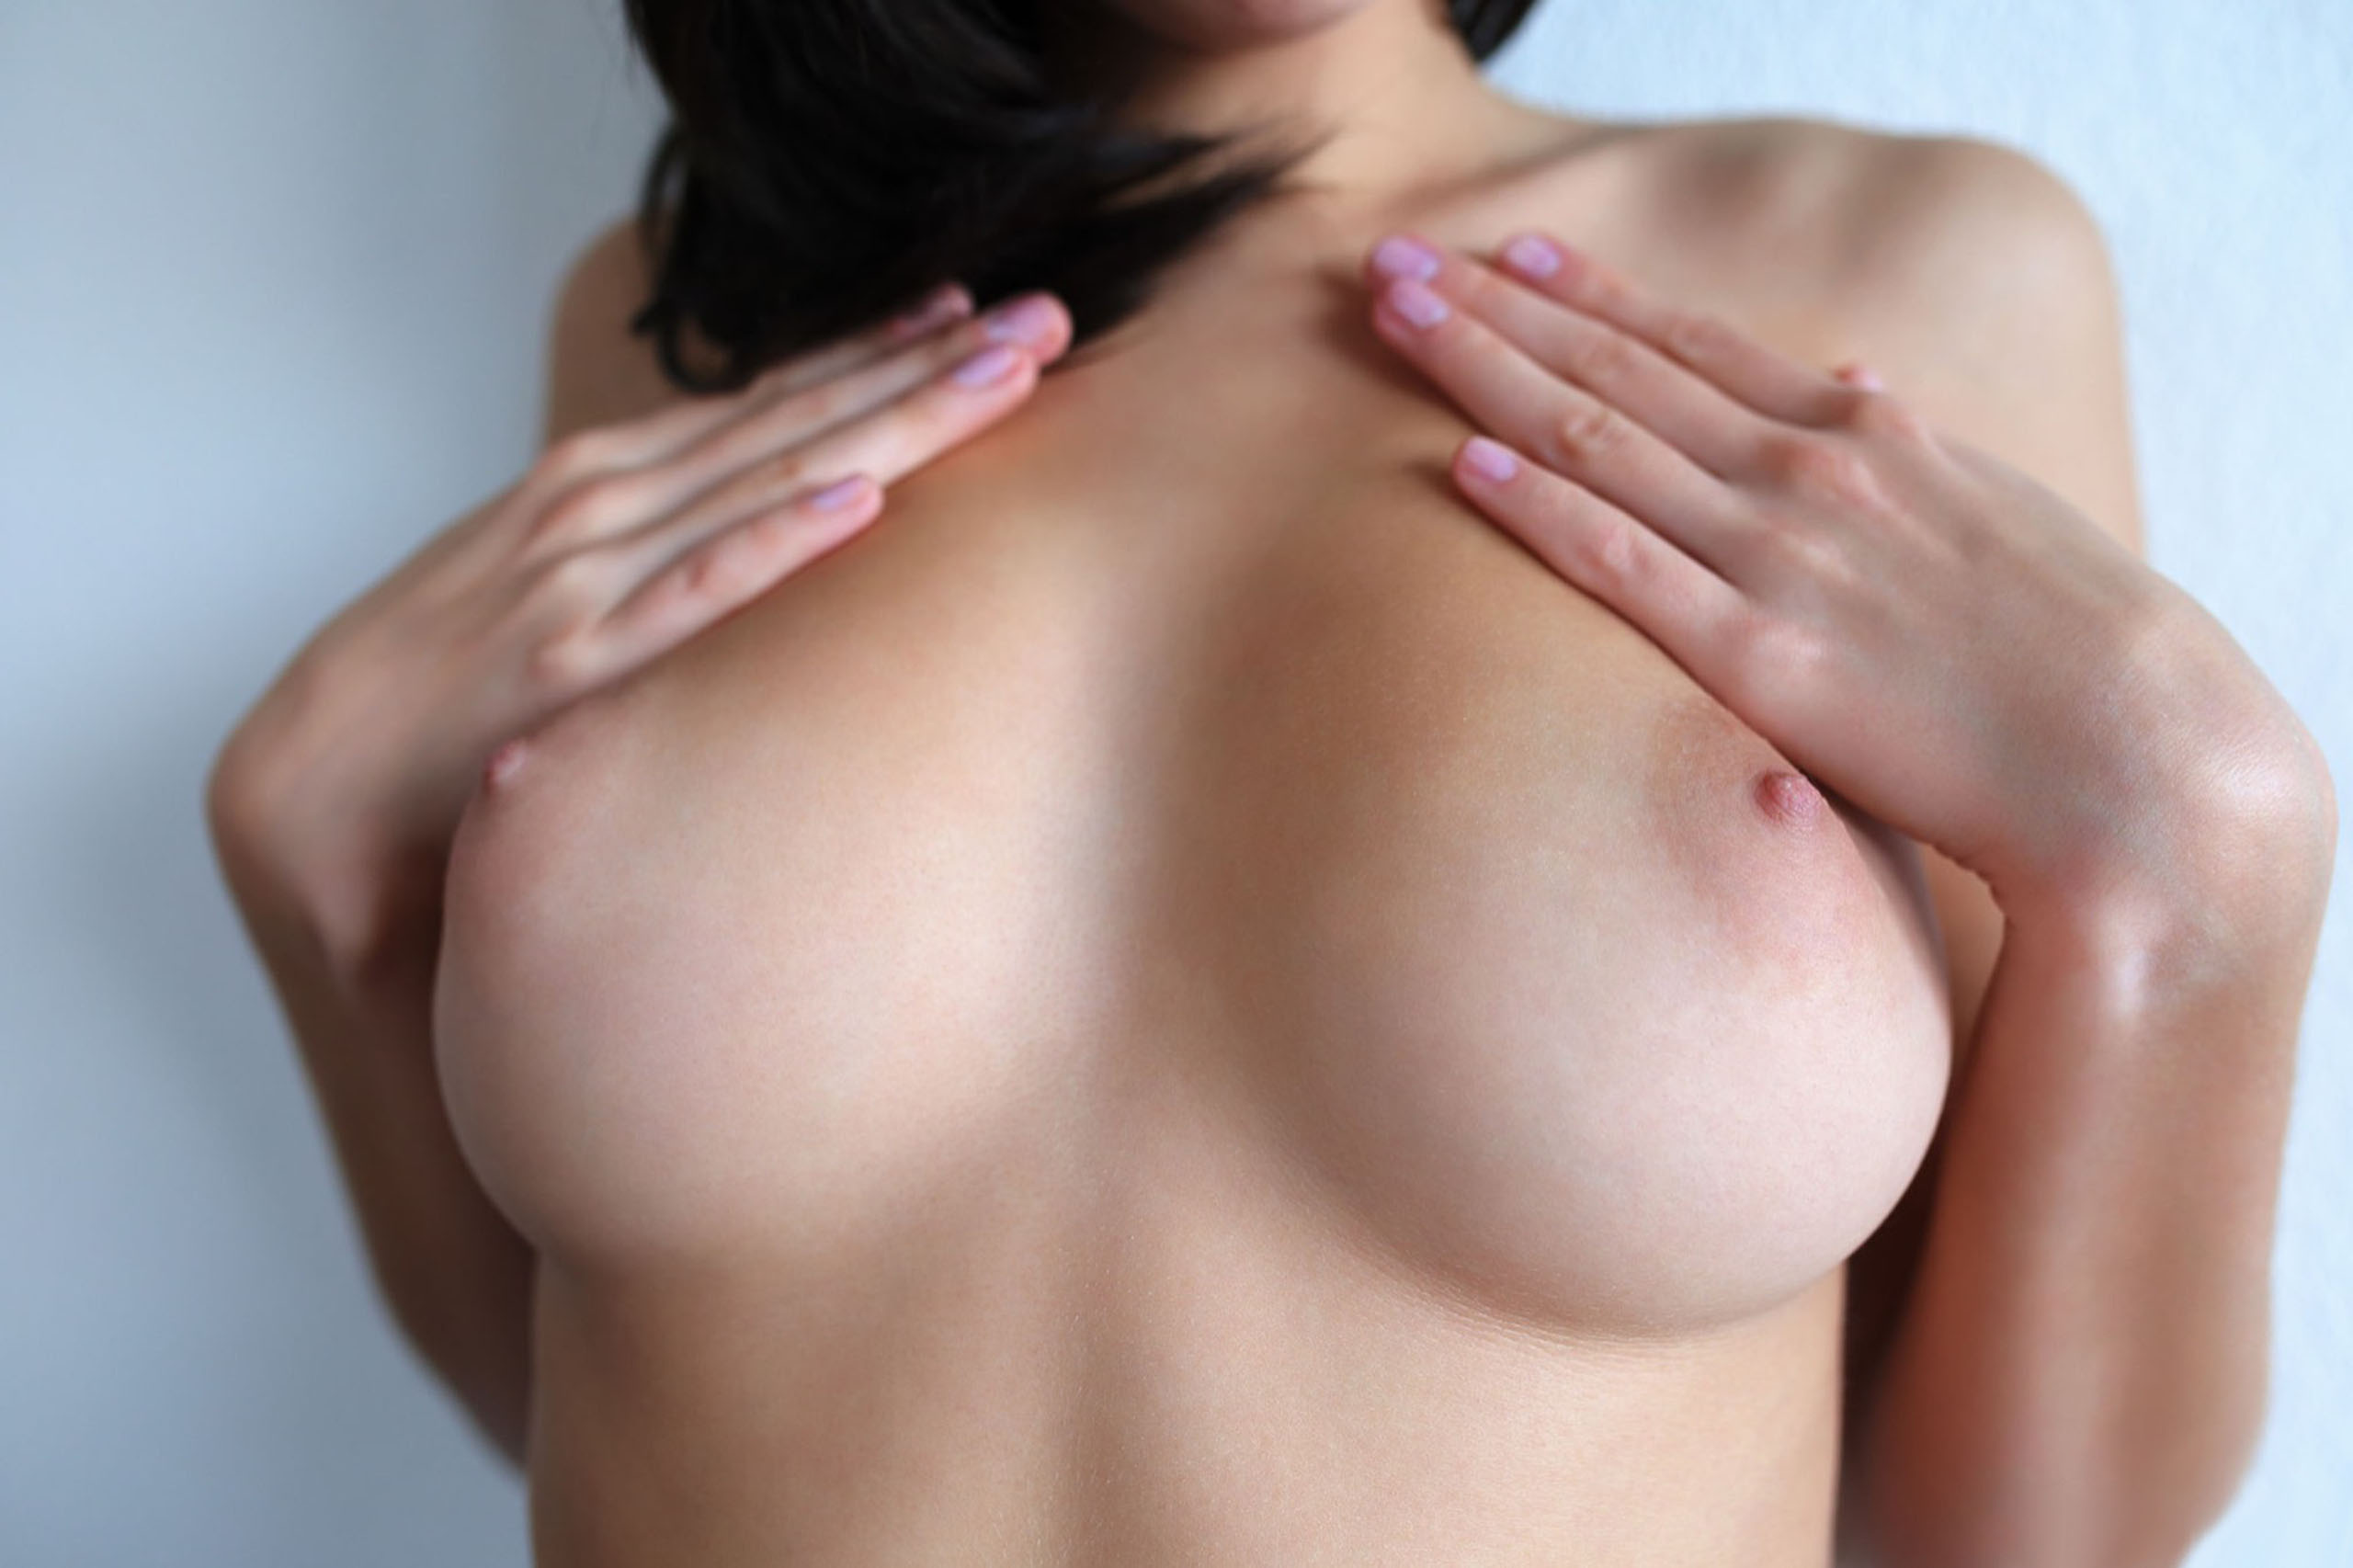 Download 3gp big tits